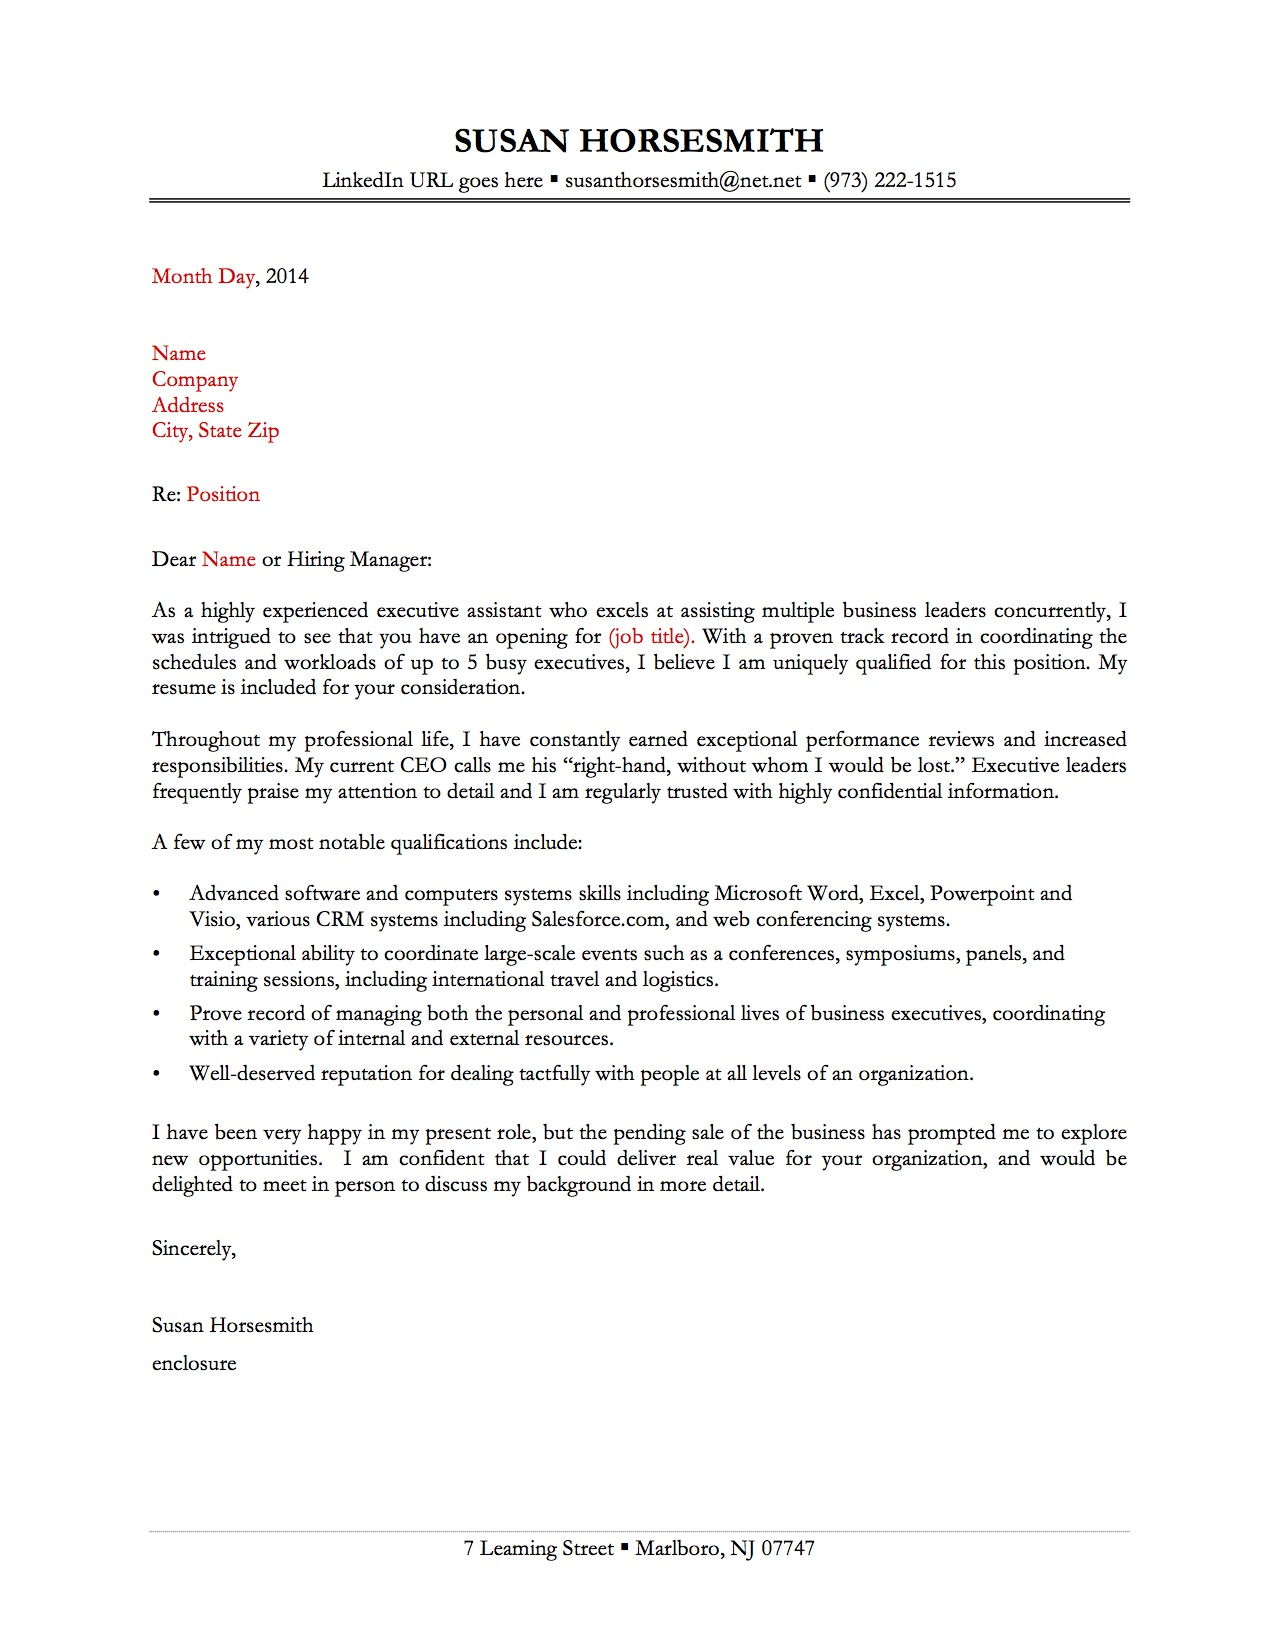 sample cover letter 1 - What Should I Write In My Cover Letter